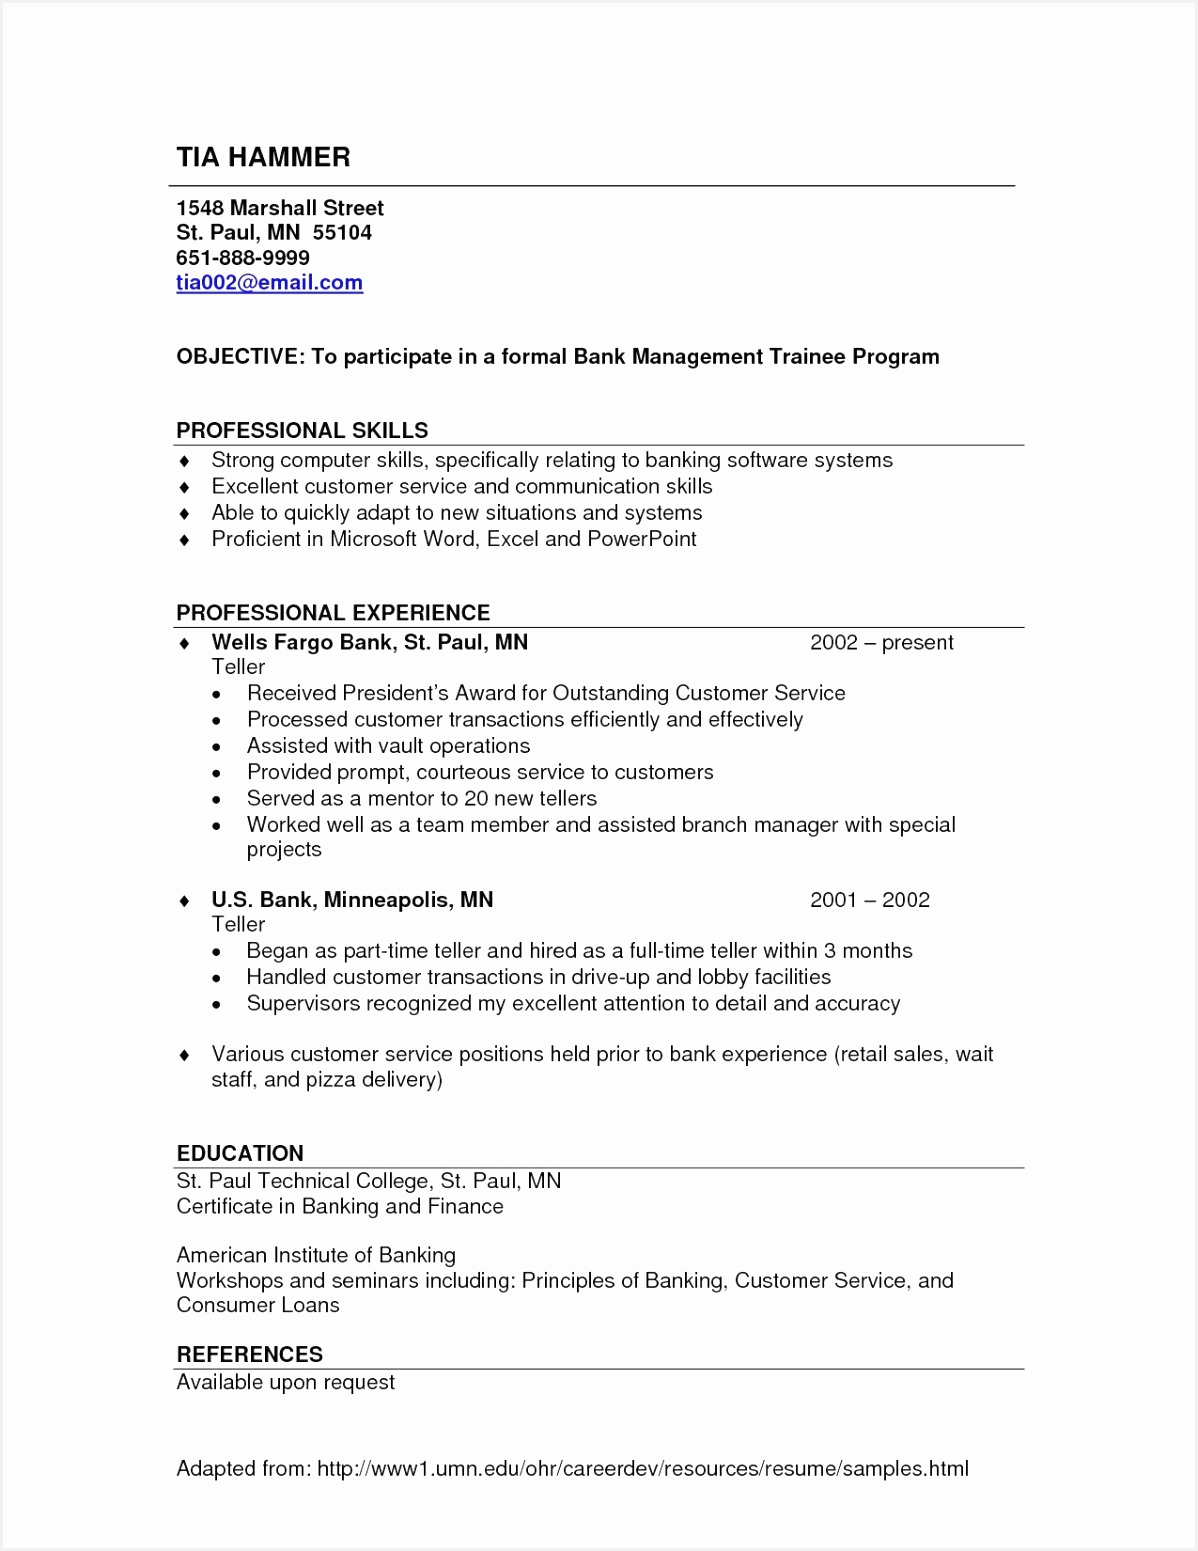 Example Of Australian Resume Ggysi Awesome Resume Sample Australia Archives Kolot Co Valid Resume Sample Team15511198